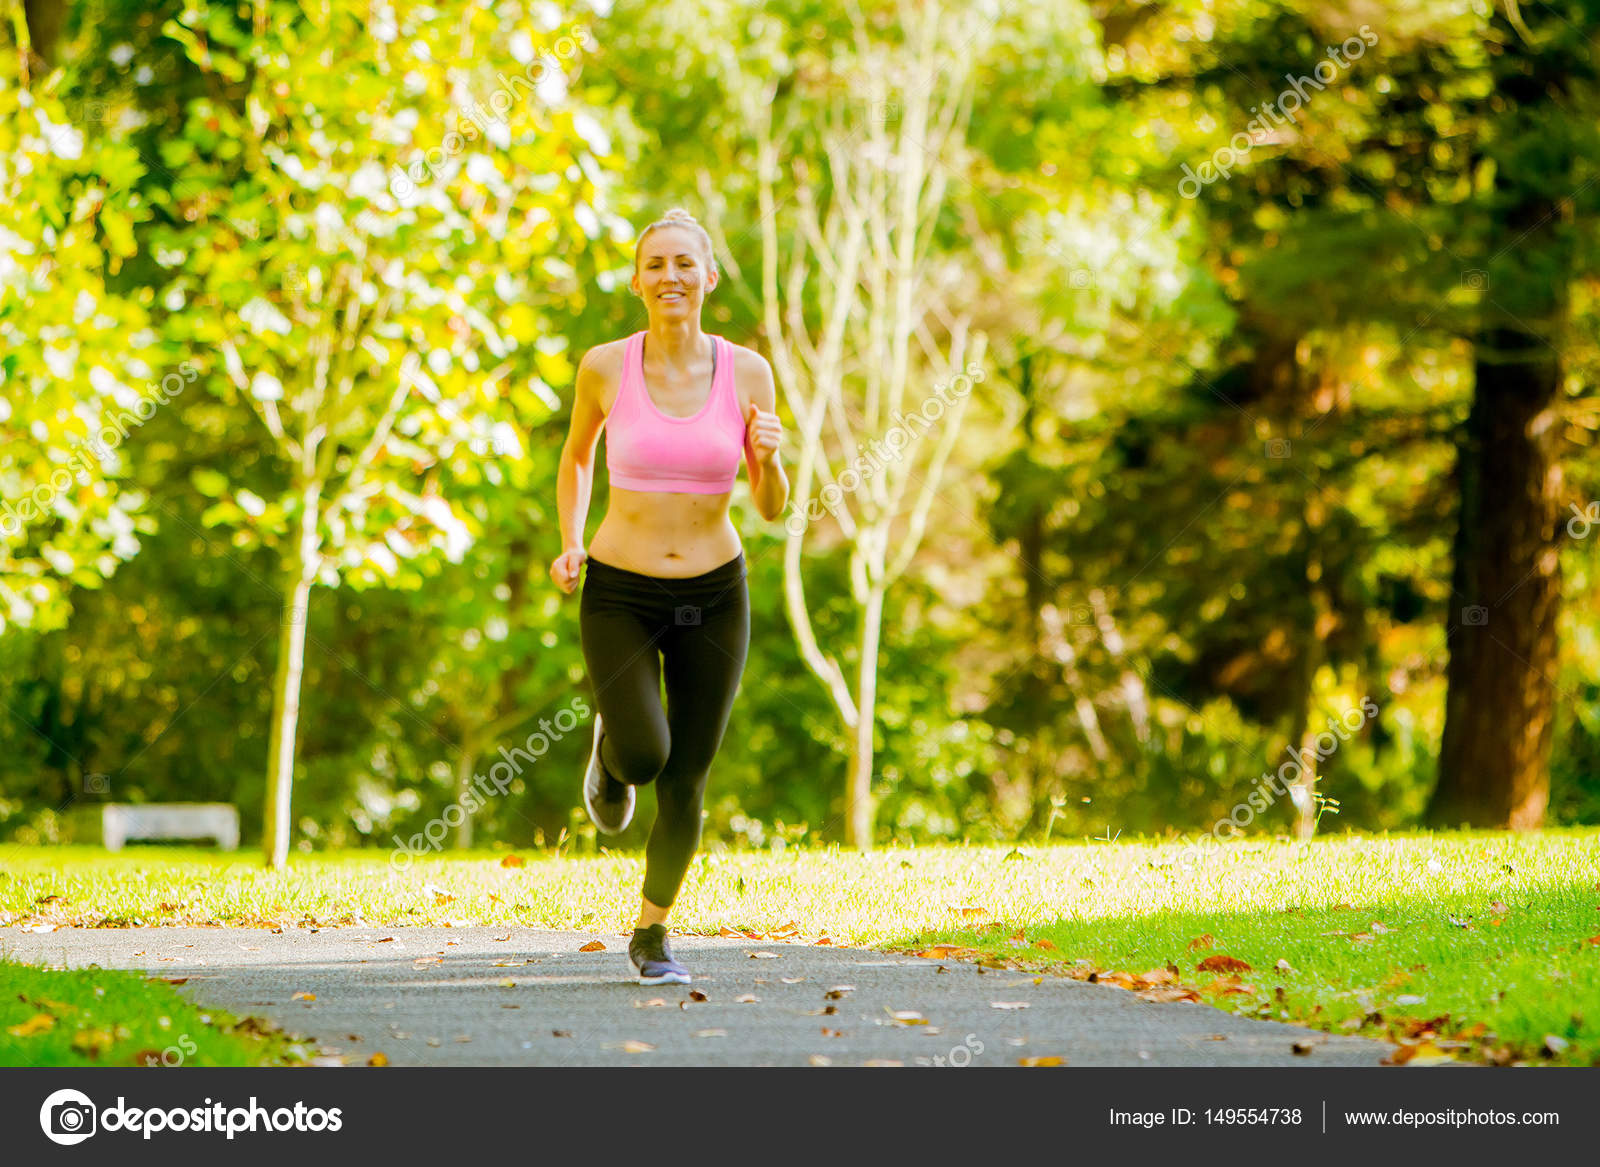 runner jogging in summer park \u2014 stock photo © volare2004 149554738female runner wearing sport clothes jogging in summer park green trees background \u2014 photo by